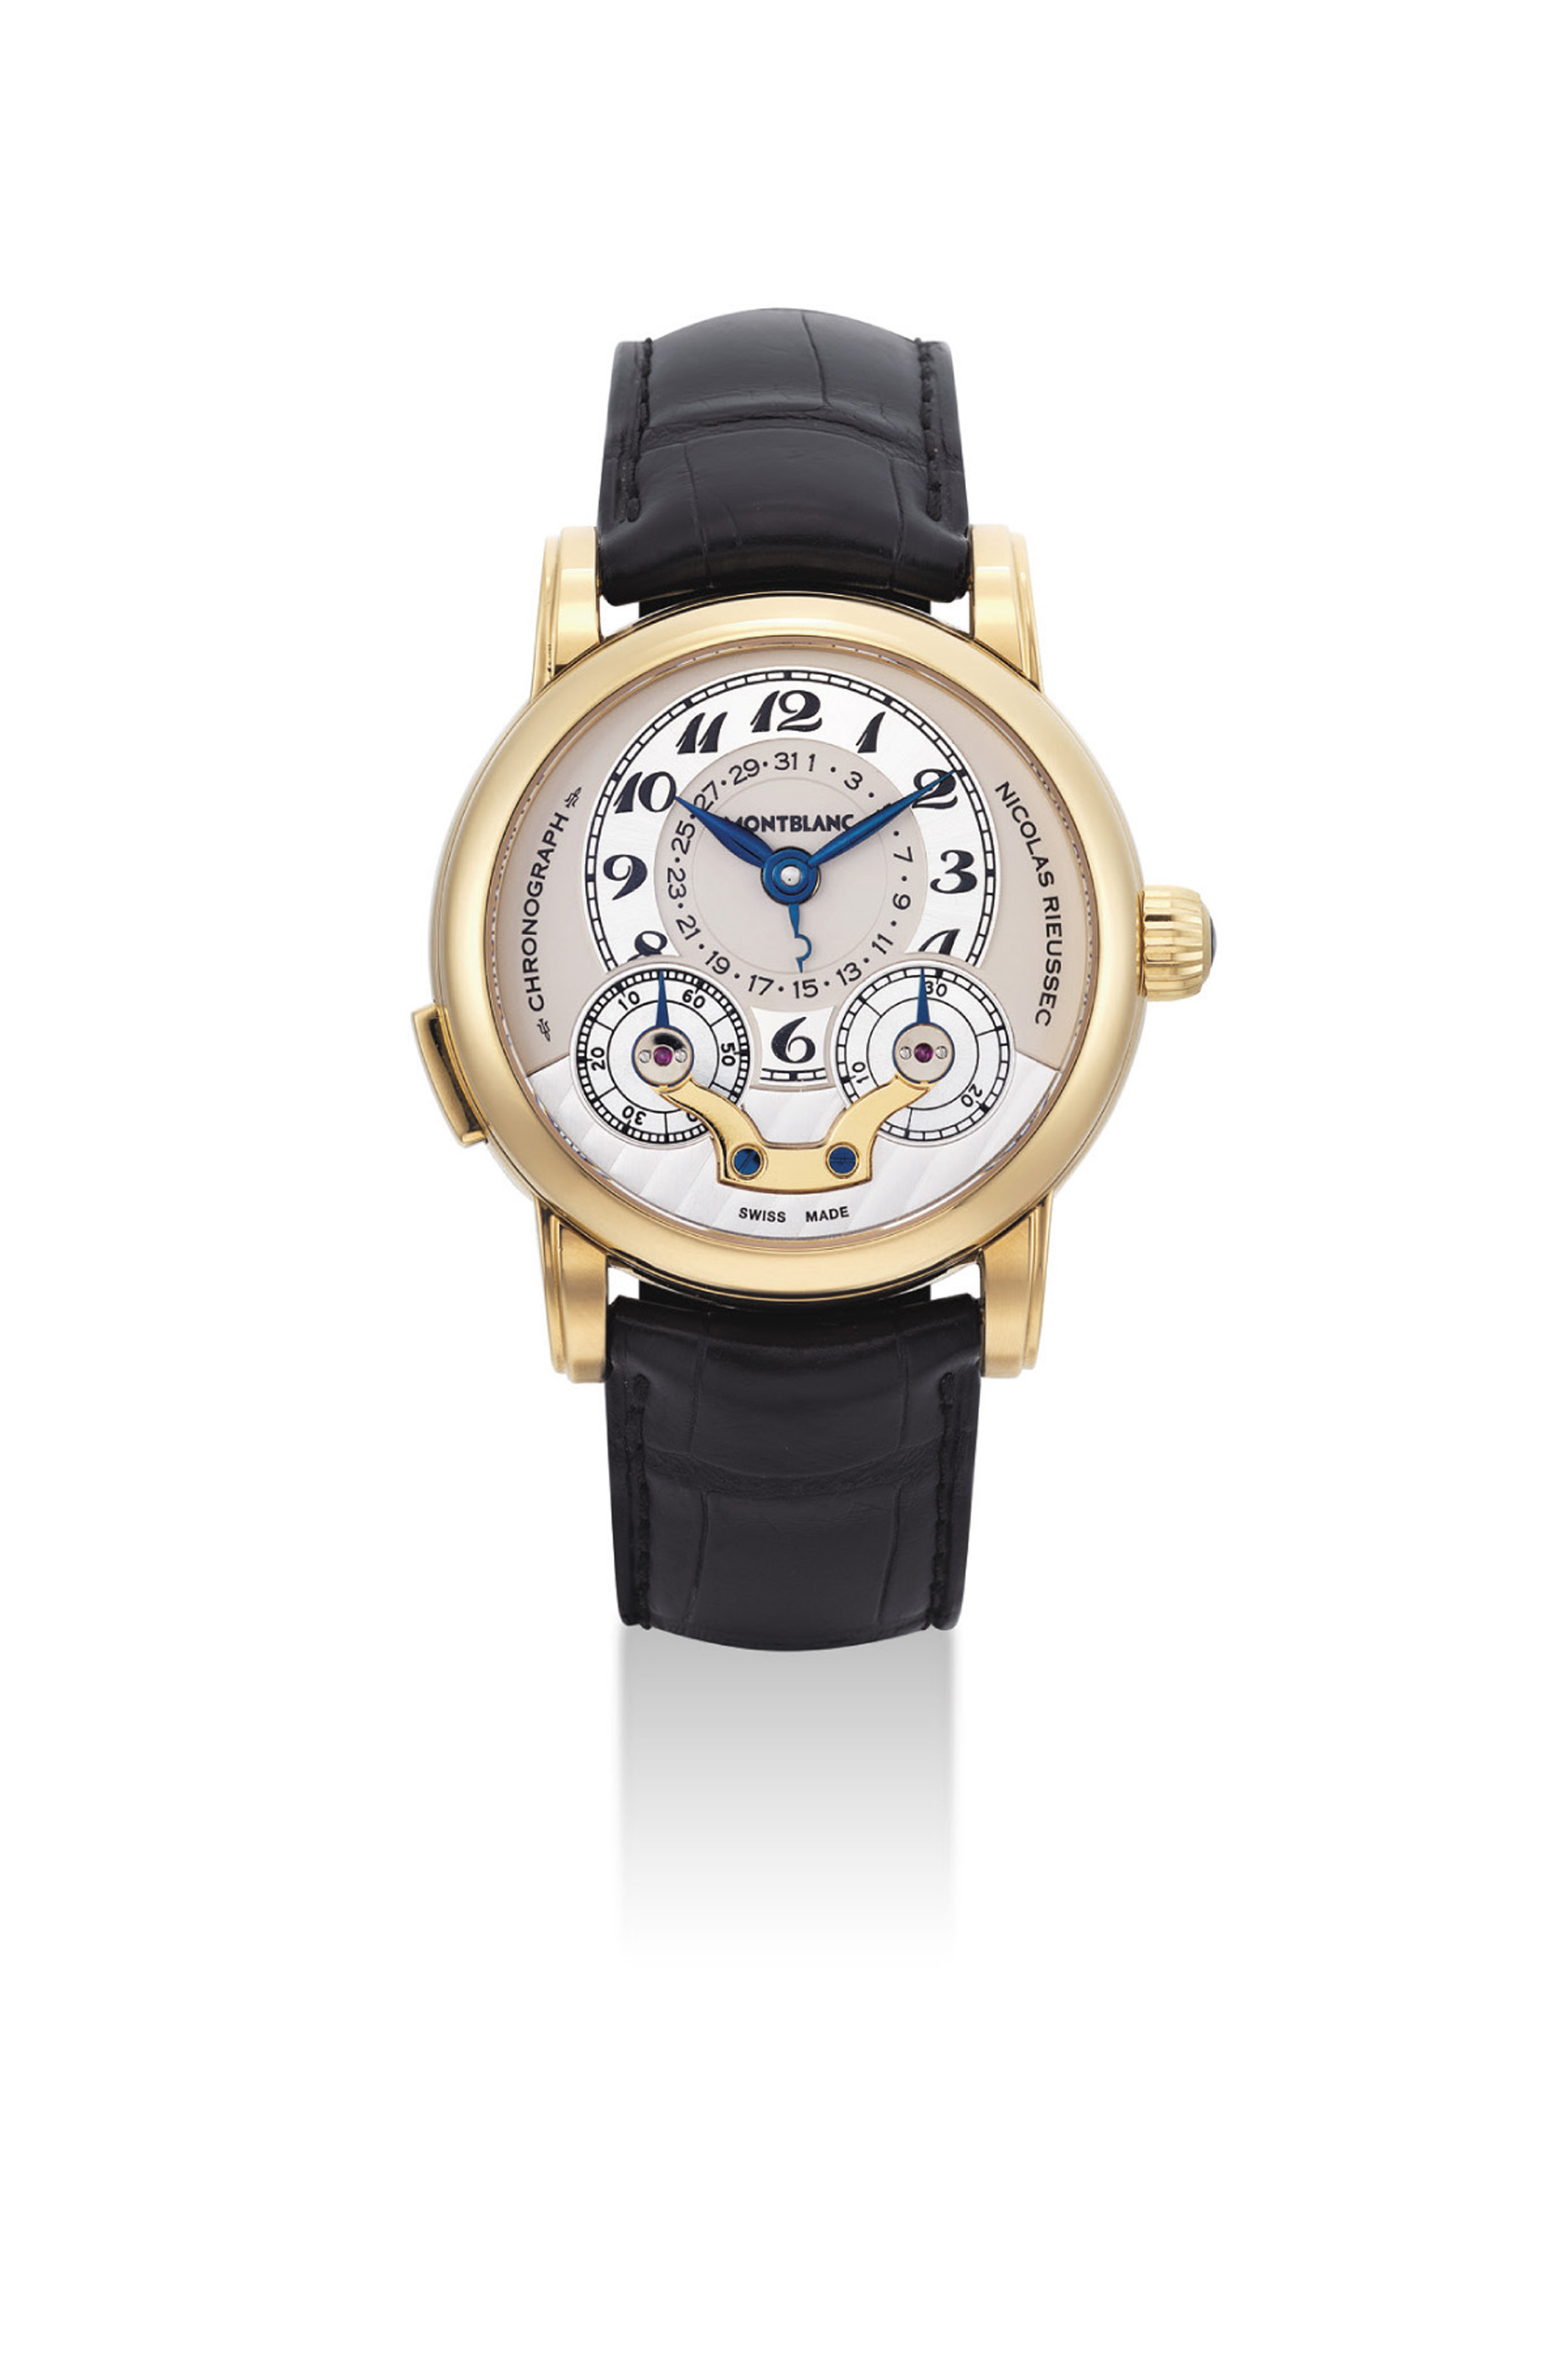 MONTBLANC. A FINE 18K GOLD LIMITED EDITION SINGLE BUTTON CHRONOGRAPH WRISTWATCH WITH DATE AND POWER RESERVE